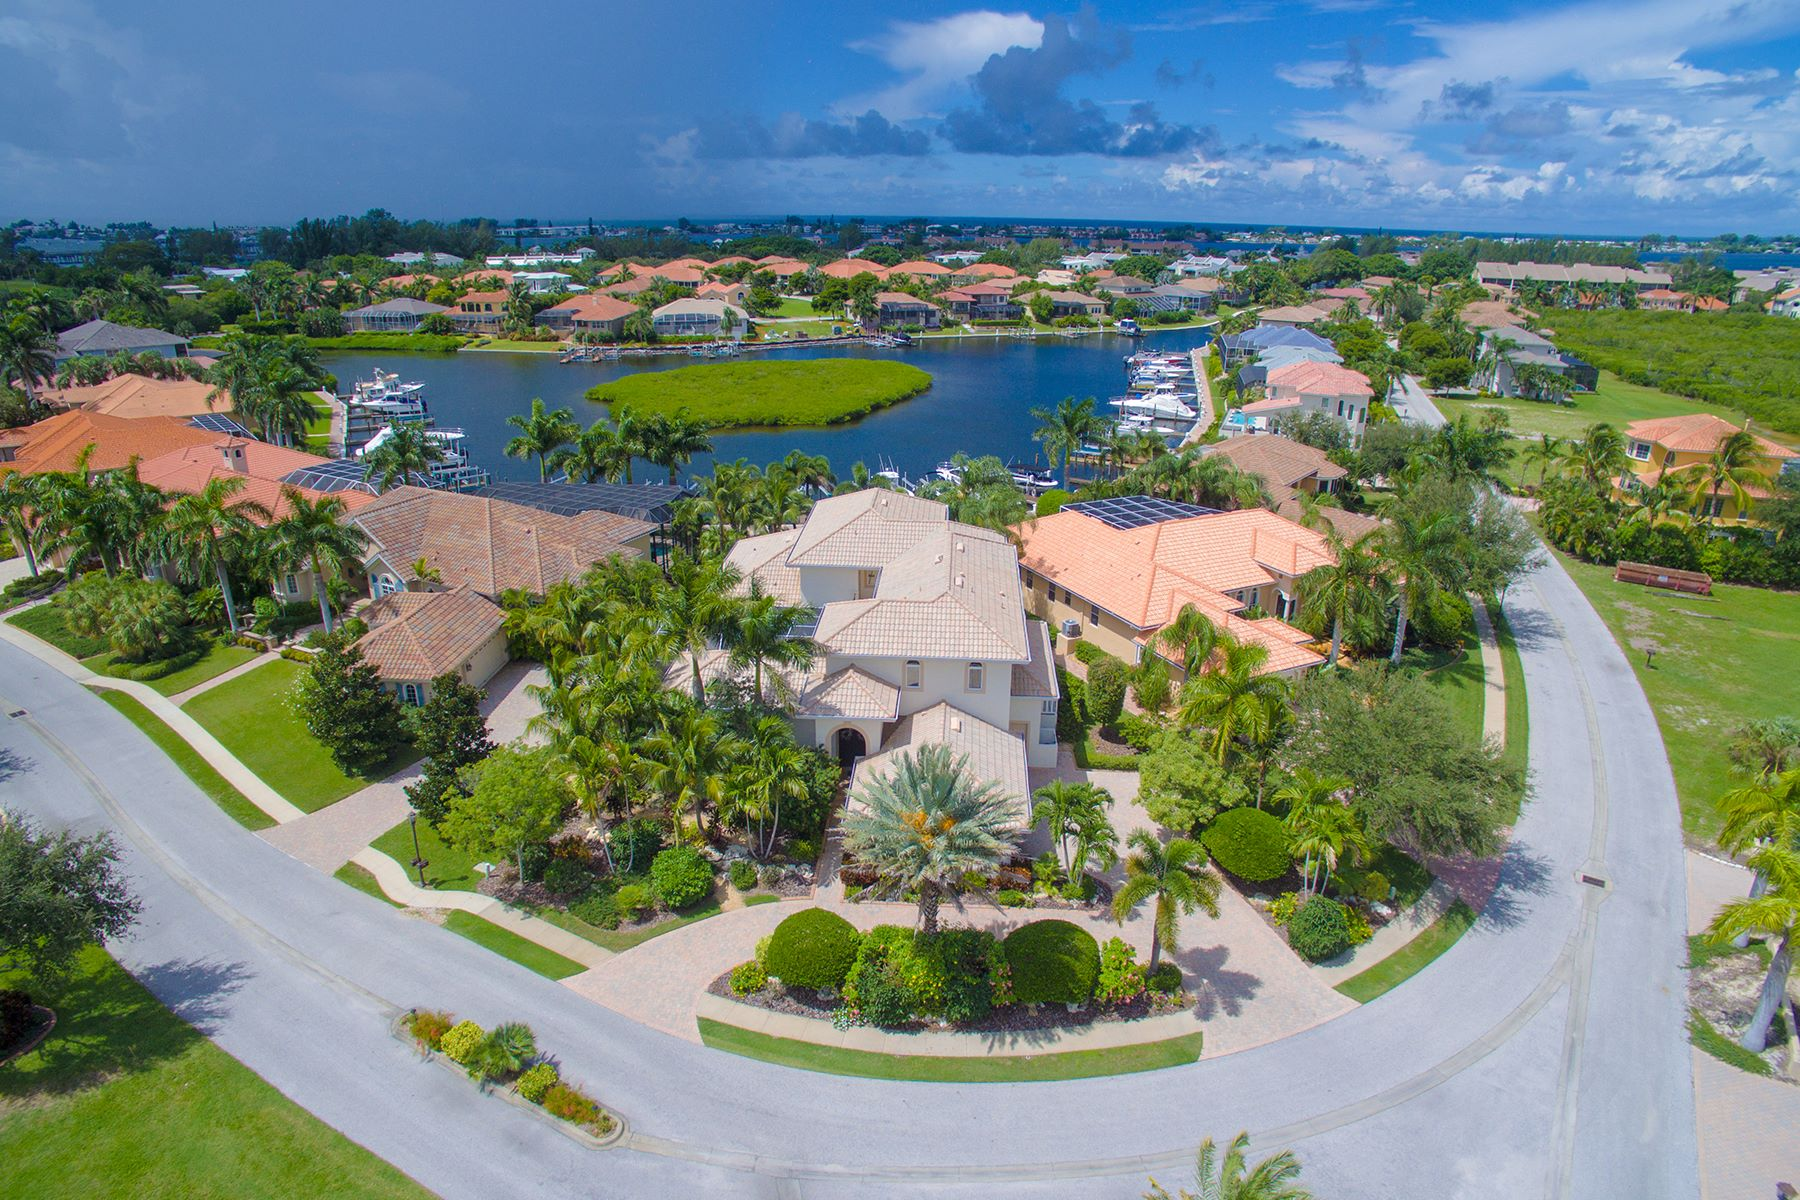 Single Family Home for Sale at HARBOUR LANDINGS ESTATES 4004 Commodore Blvd, Cortez, Florida 34215 United States